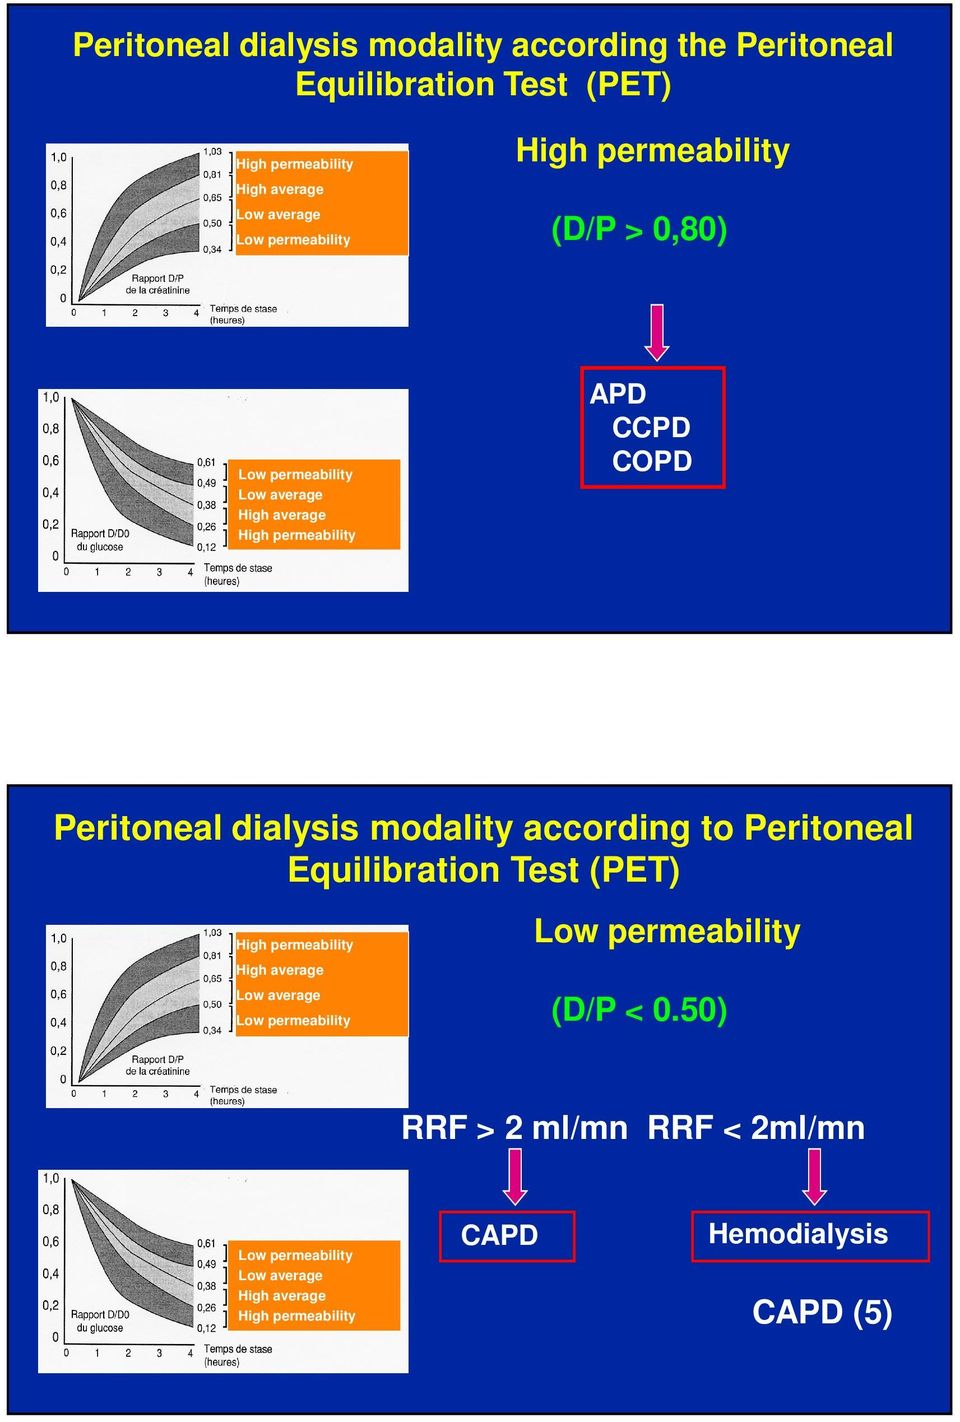 dialysis modality according to Peritoneal Equilibration Test (PET) High permeability High average Low average Low permeability Low